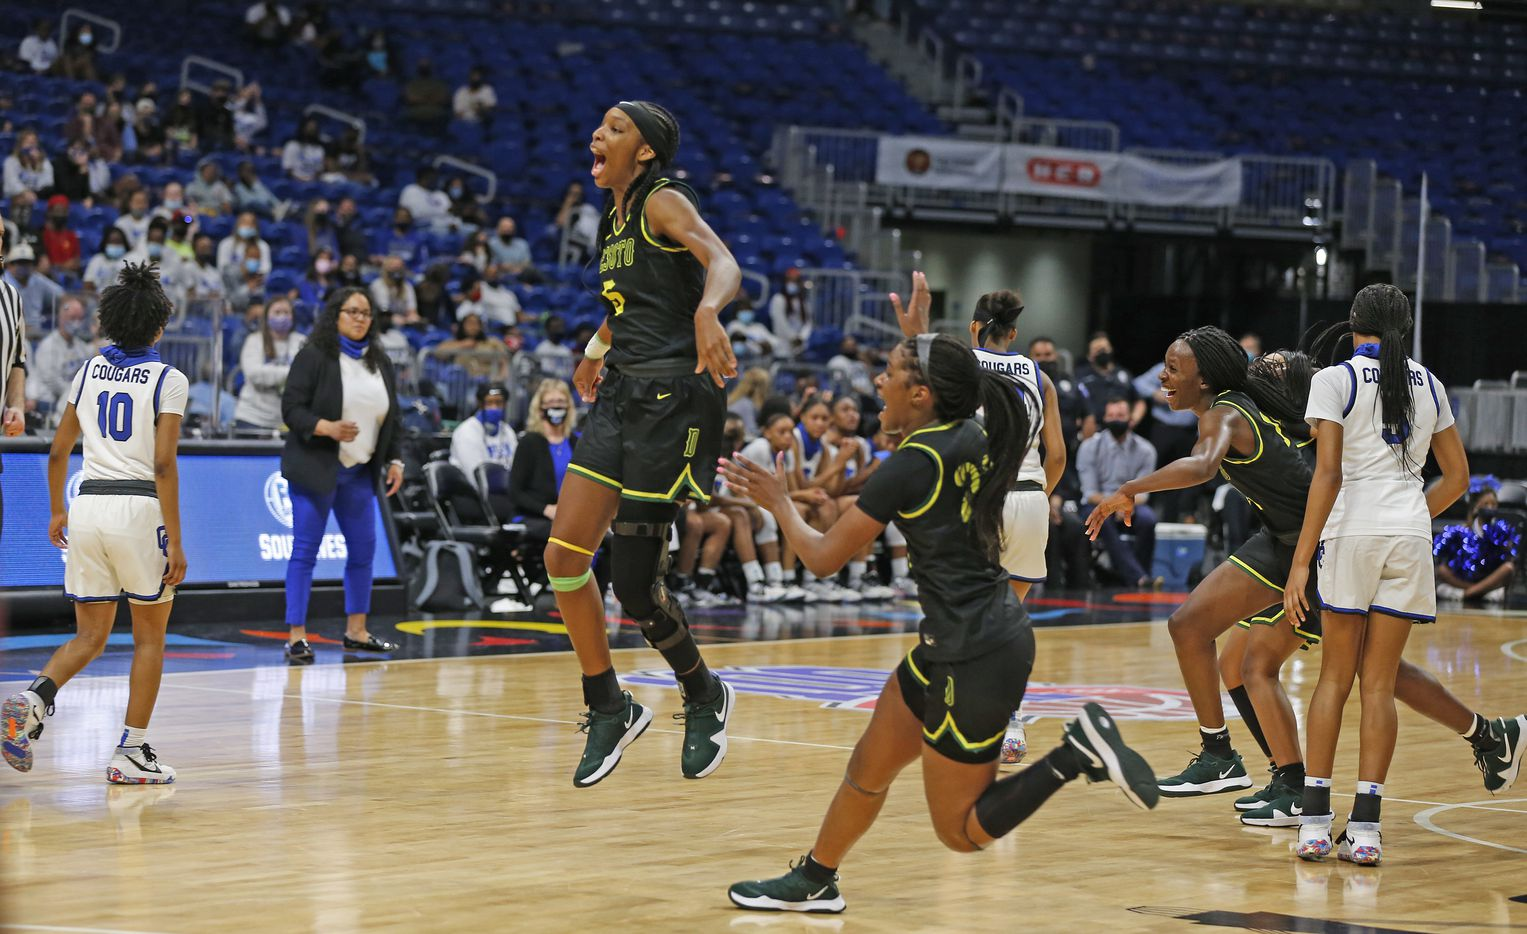 DeSoto Sa'Myah Smith #5 leaps in the air after defeating Cypress Creek. DeSoto vs. Cypress Creek girls basketball Class 6A state championship game on Thursday, March 12, 2021 at the Alamodome.